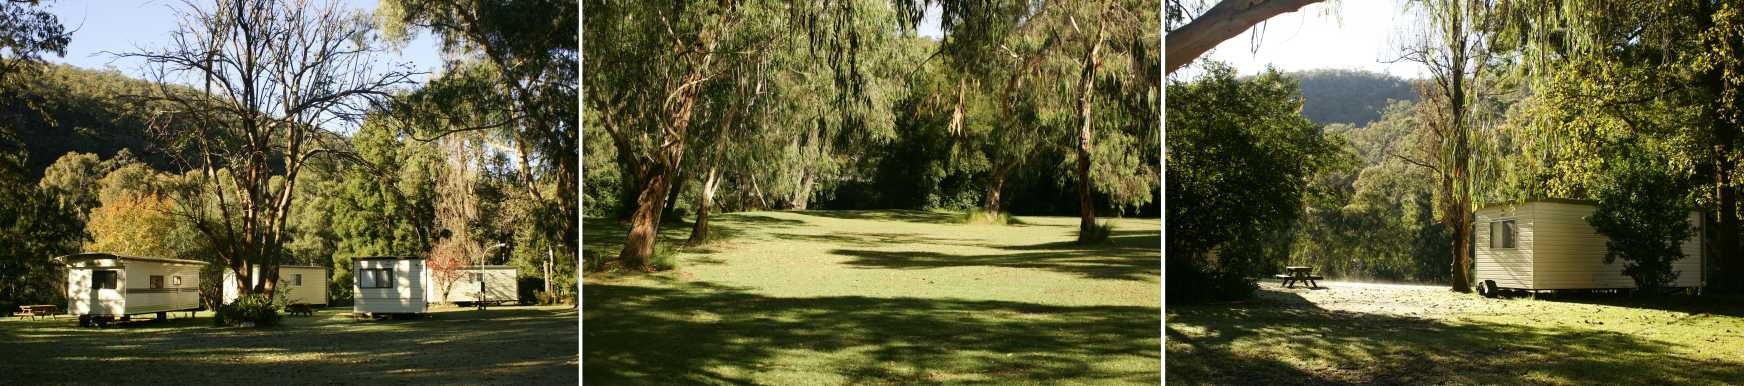 Colo River Holiday Park